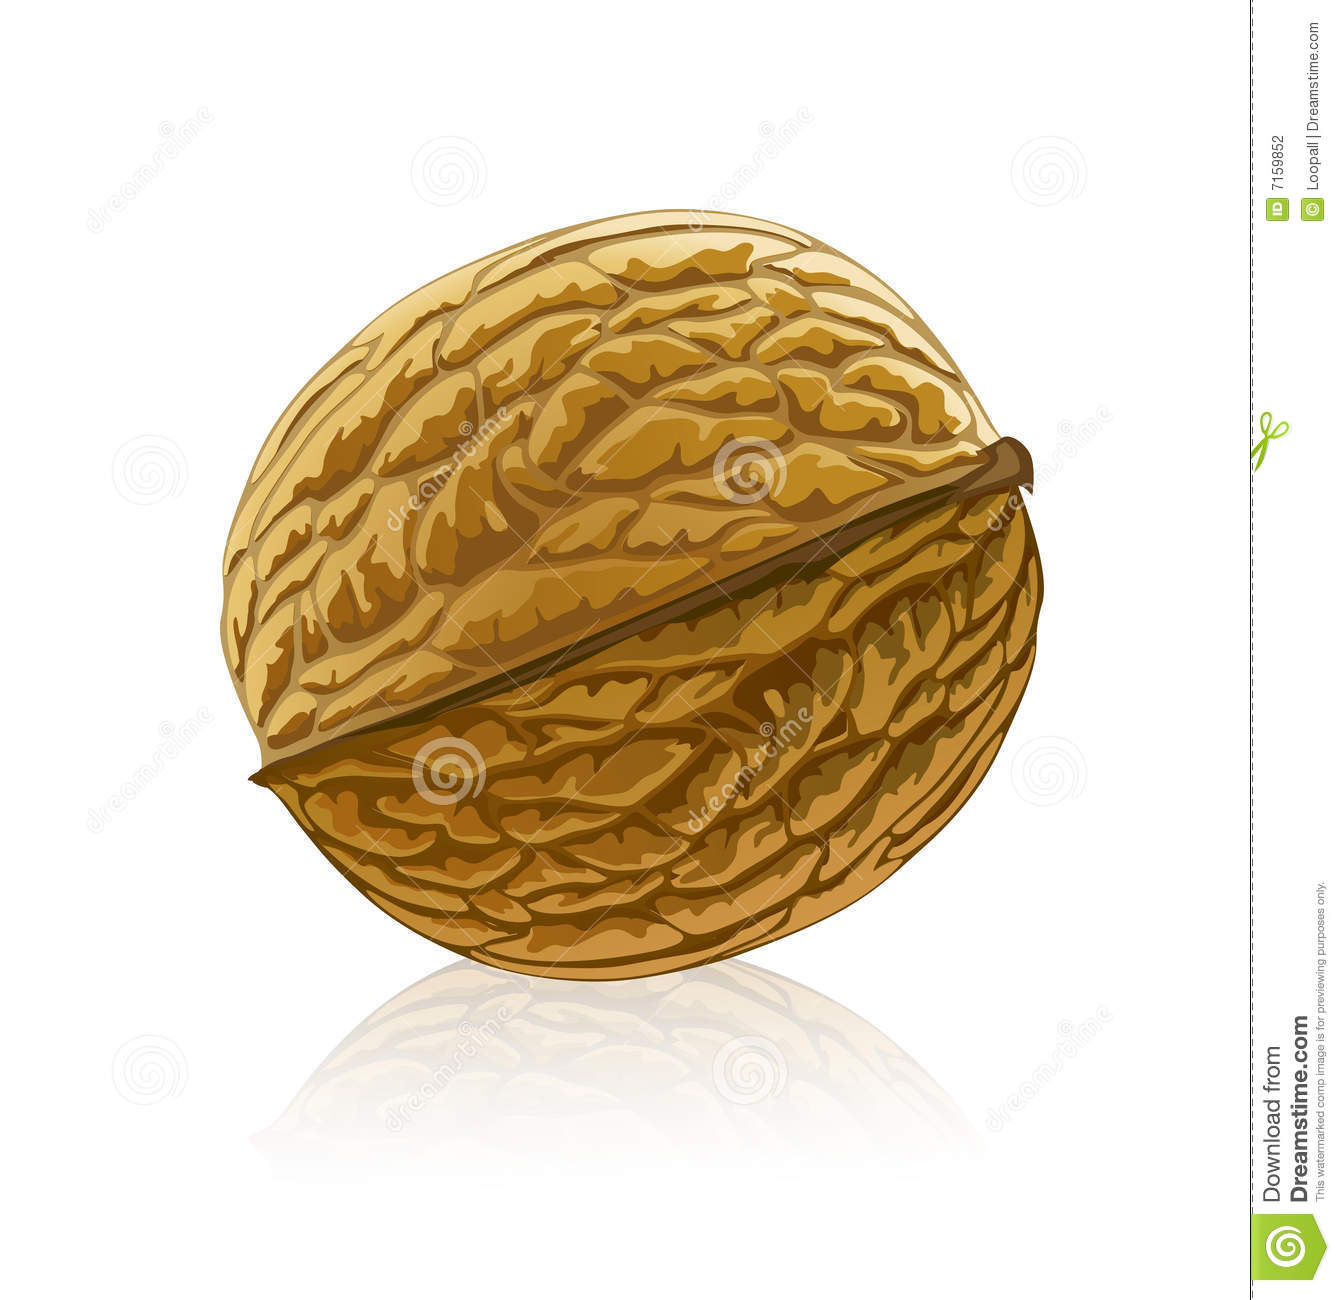 Walnut clipart #7, Download drawings